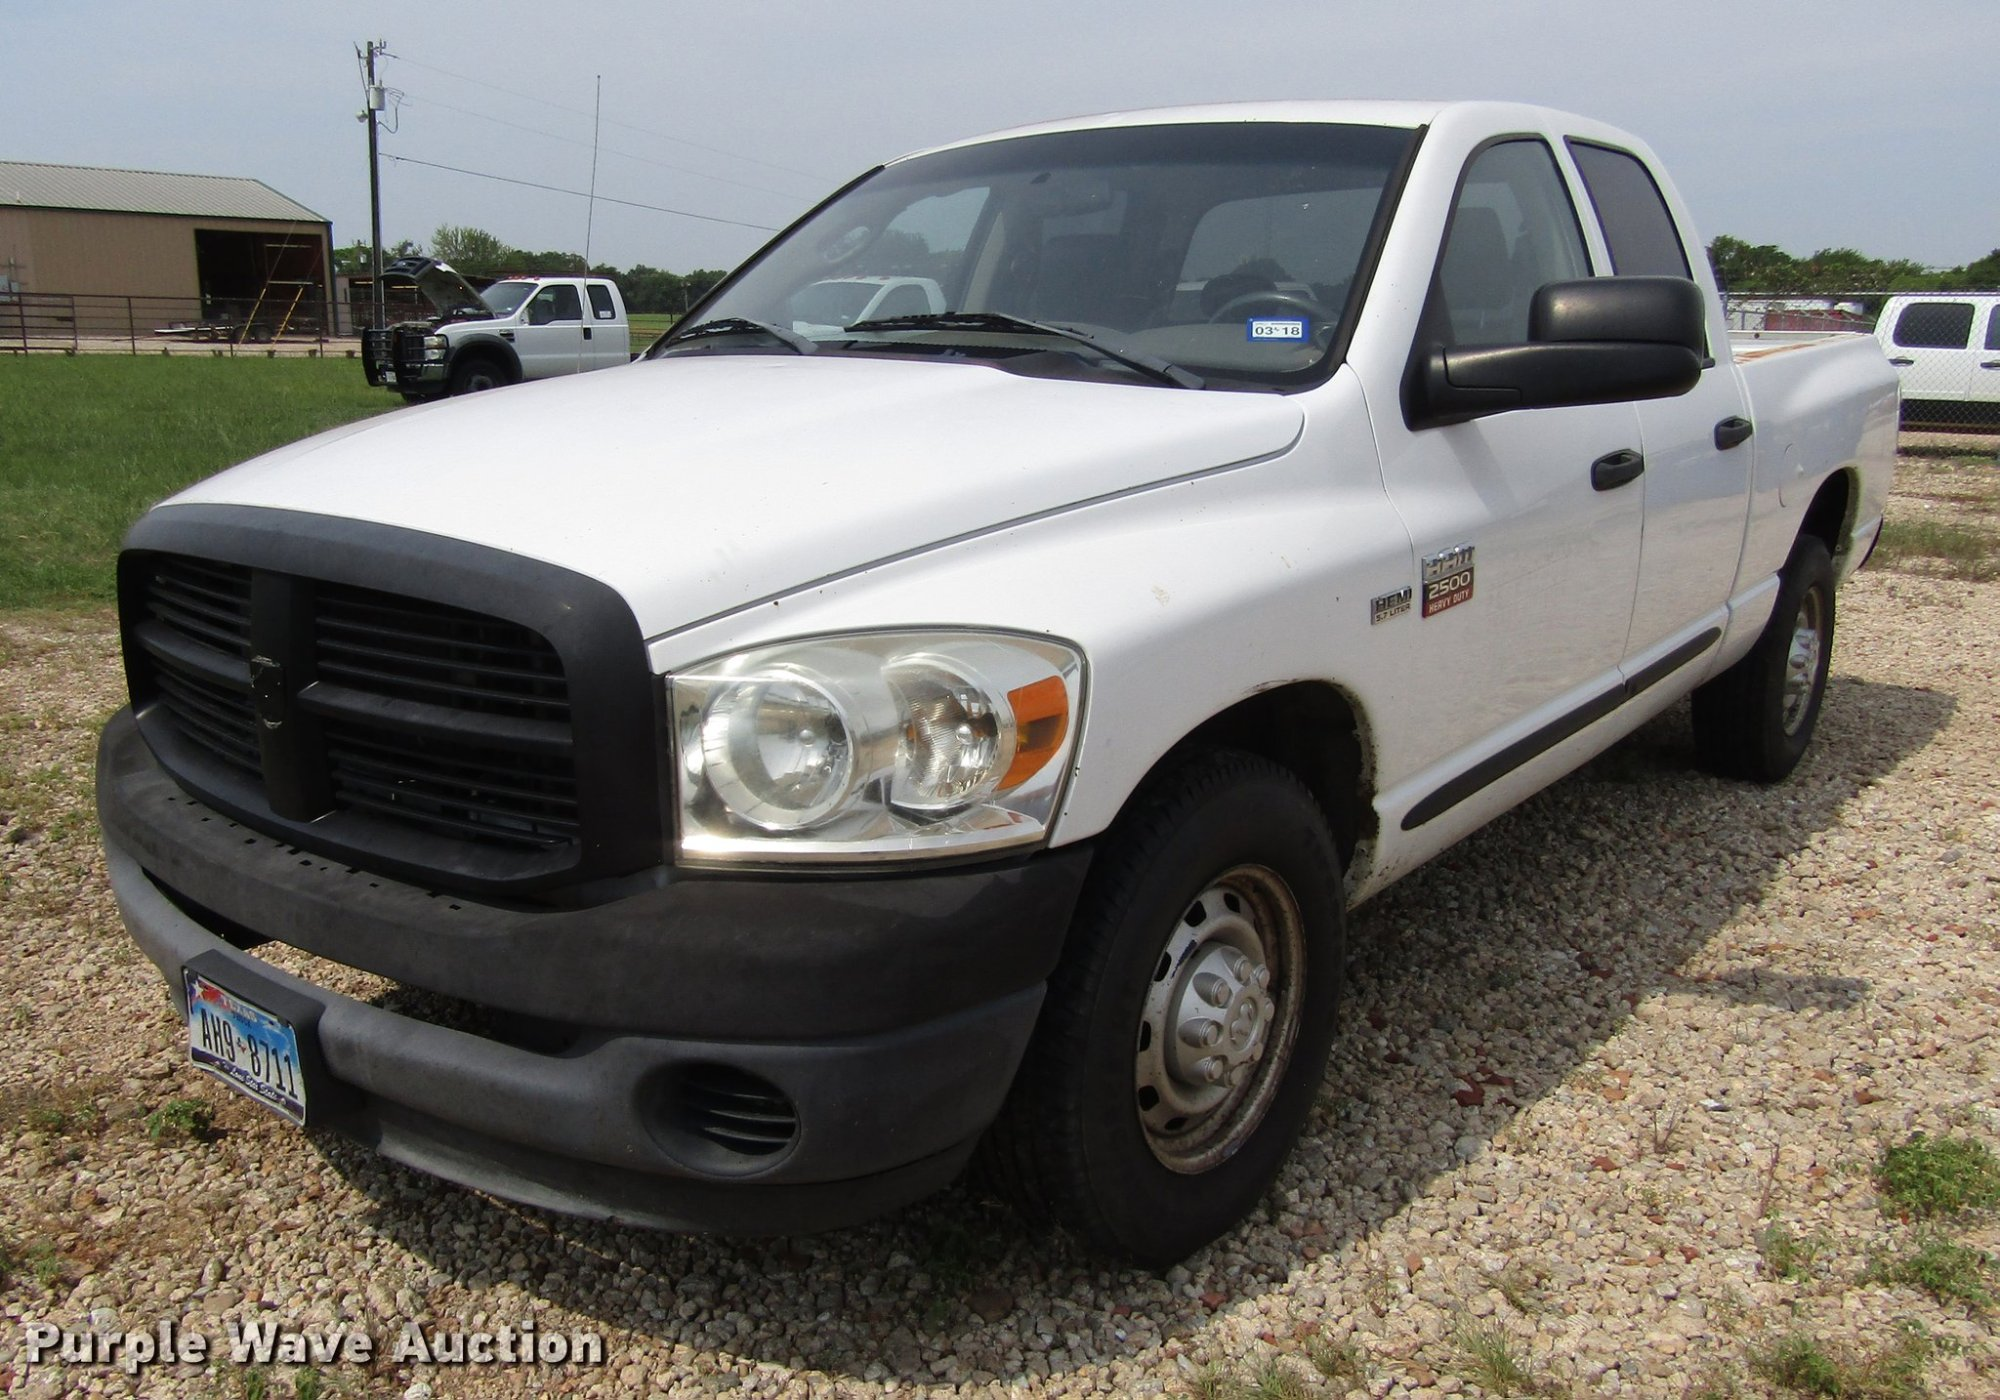 hight resolution of dc0032 image for item dc0032 2009 dodge ram 2500 hd quad cab